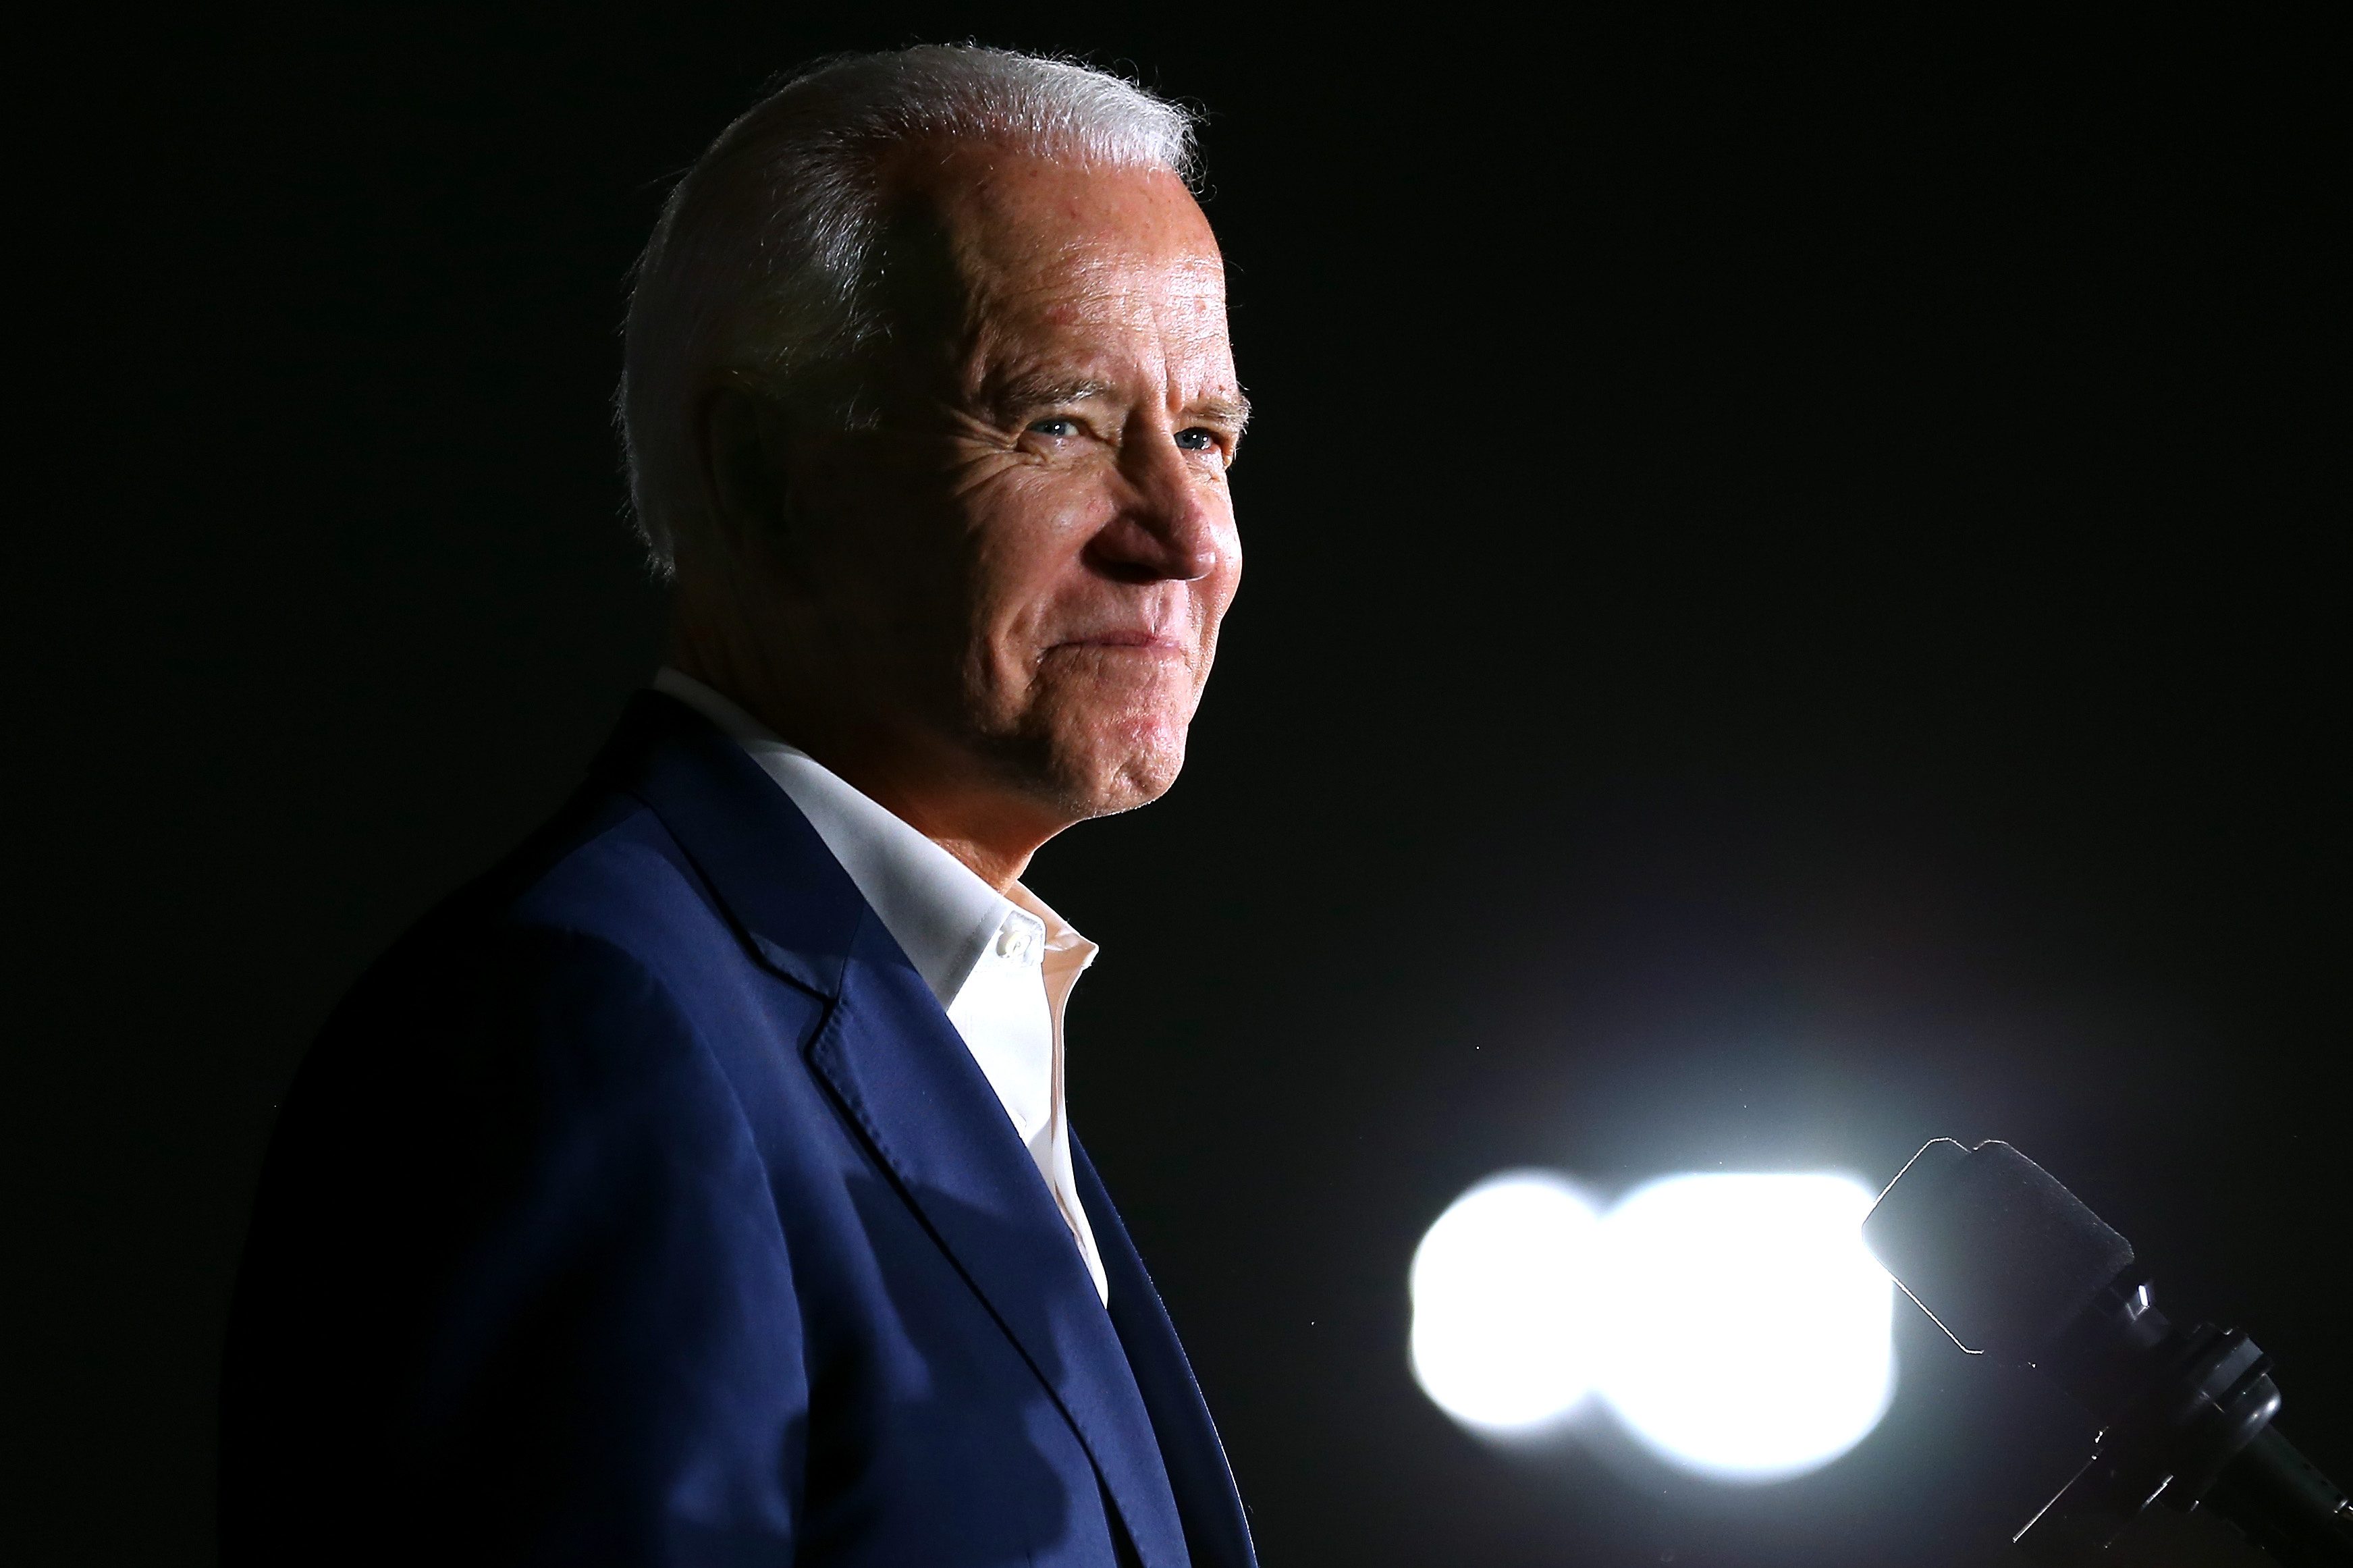 TOUGALOO, MISSISSIPPI - MARCH 08: Democratic presidential candidate former Vice President Joe Biden reacts while giving a speech during a campaign event at Tougaloo College on March 08, 2020 in Tougaloo, Mississippi. Mississippi's Democratic primary will be held this Tuesday. (Photo by Jonathan Bachman/Getty Images)